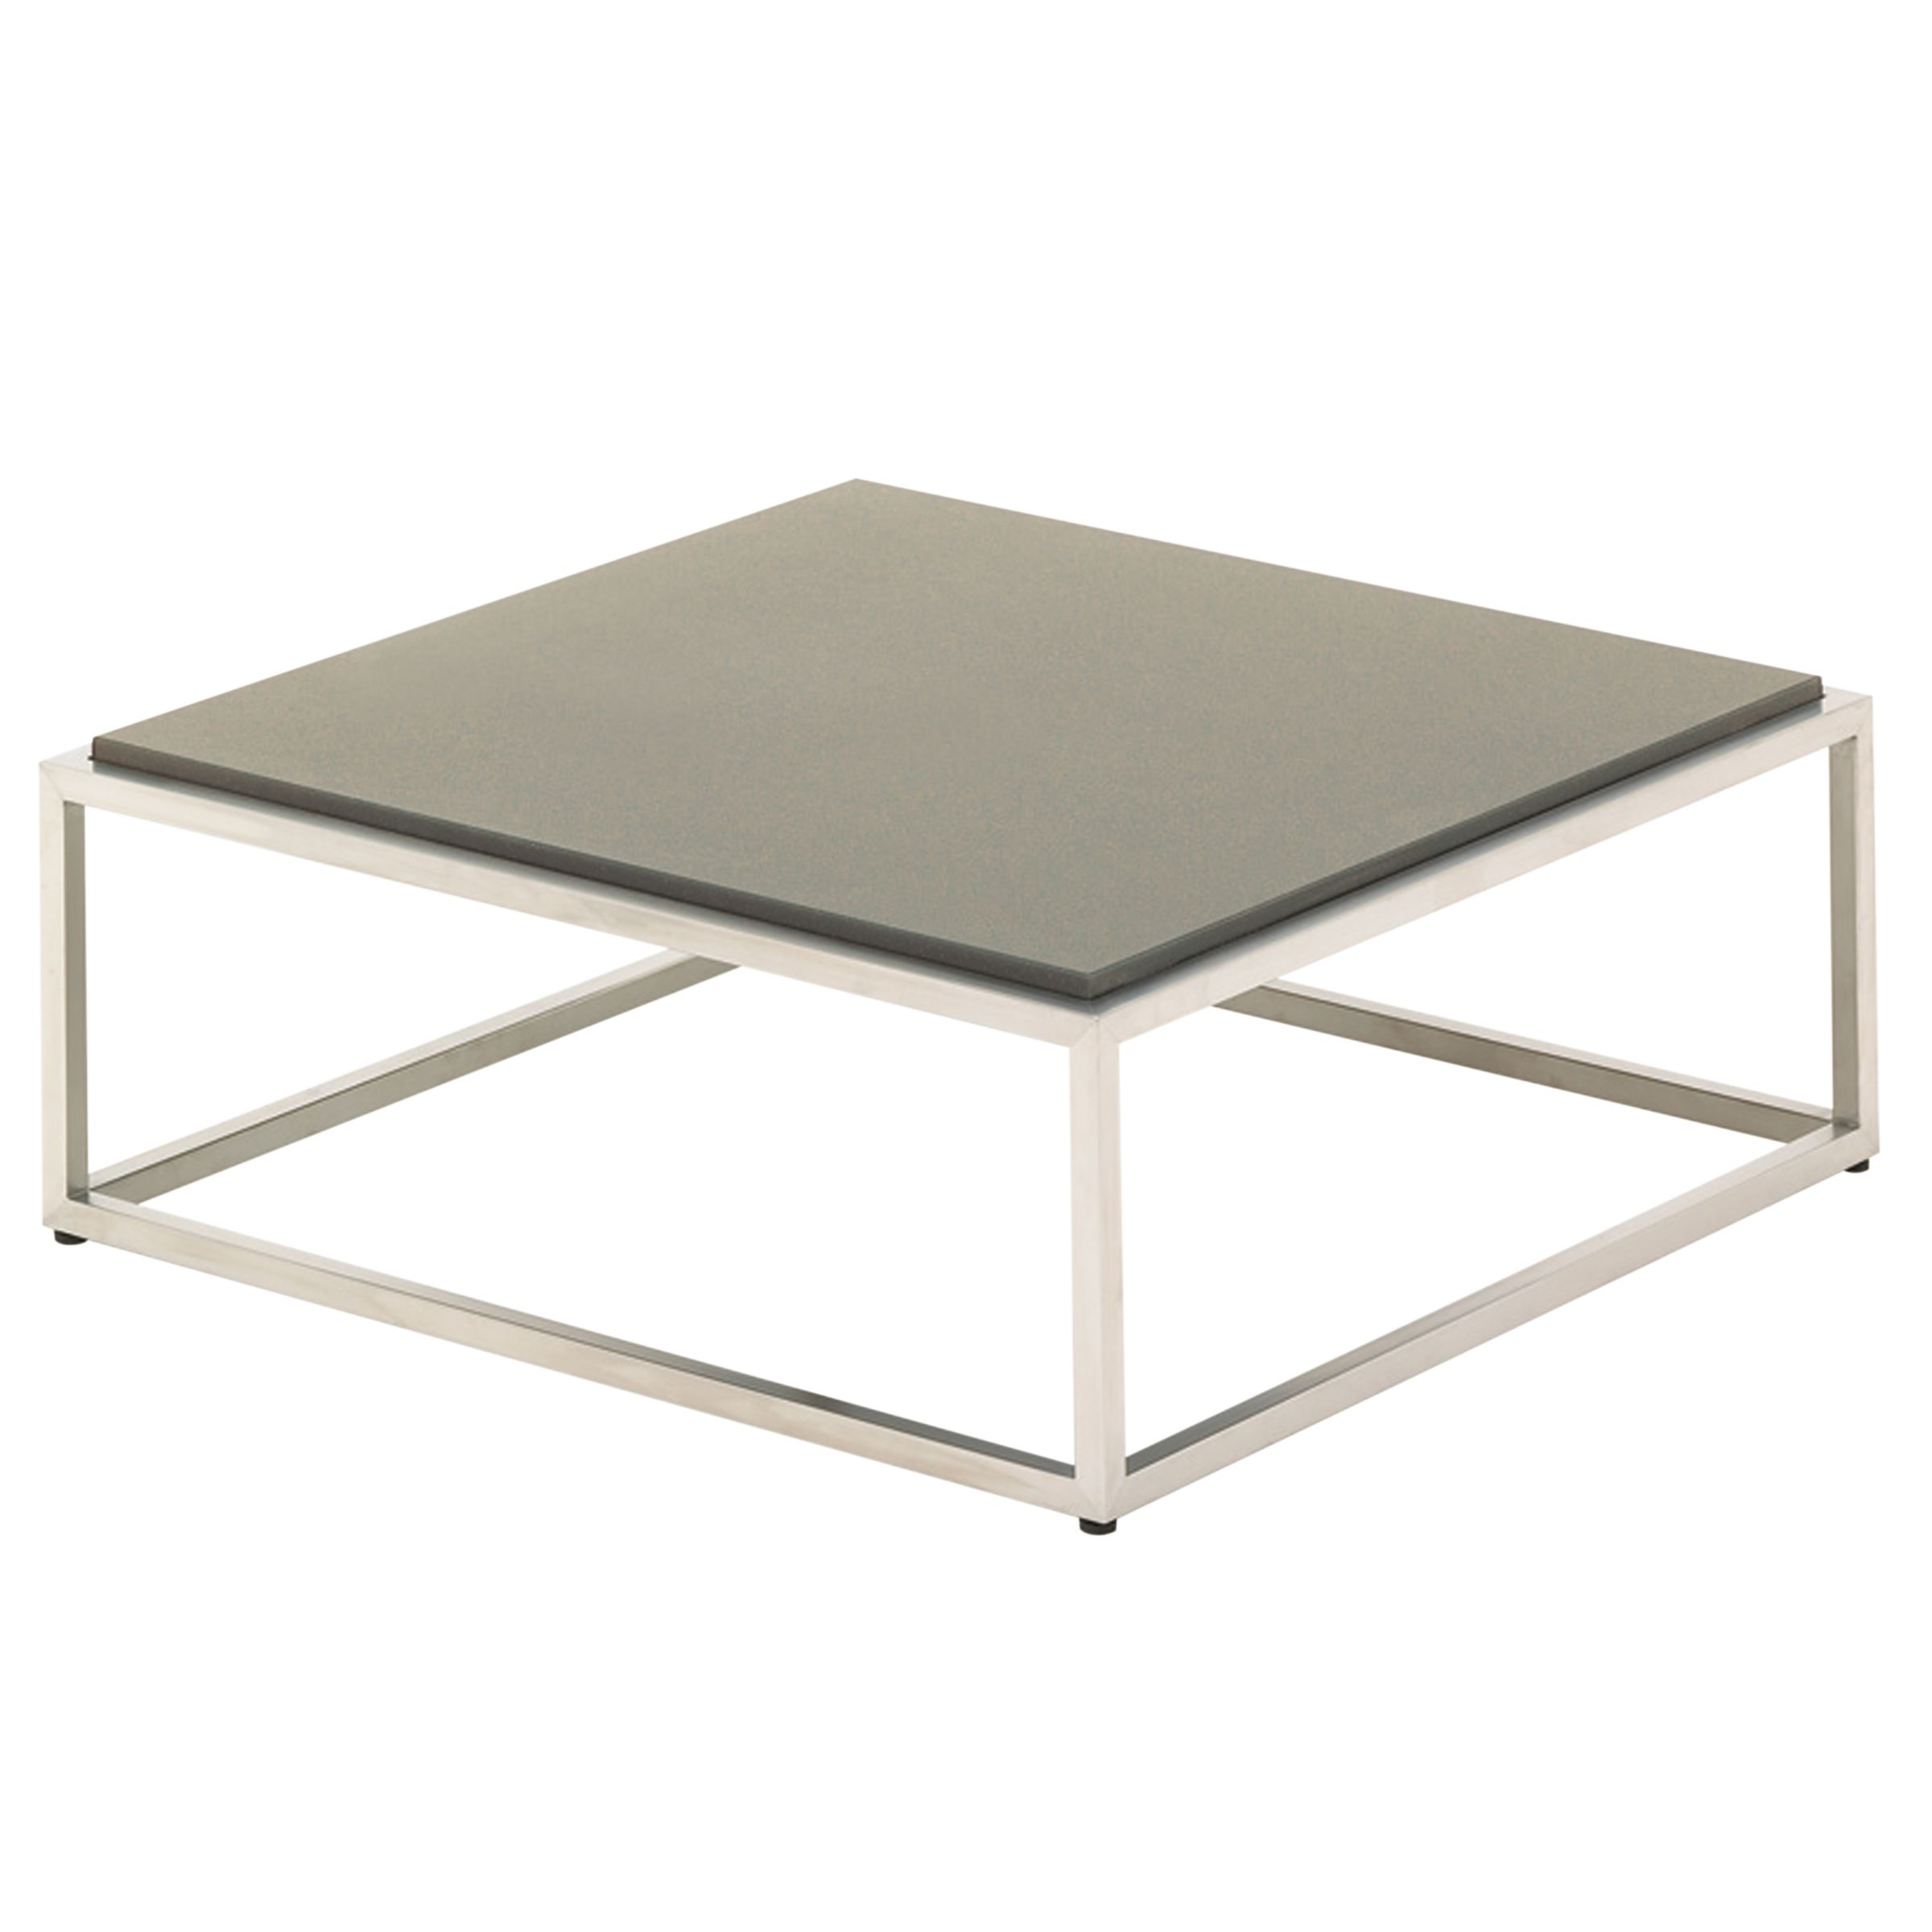 Gloster Cloud 75 x 75 Coffee Table, Quartz Top, Taupe